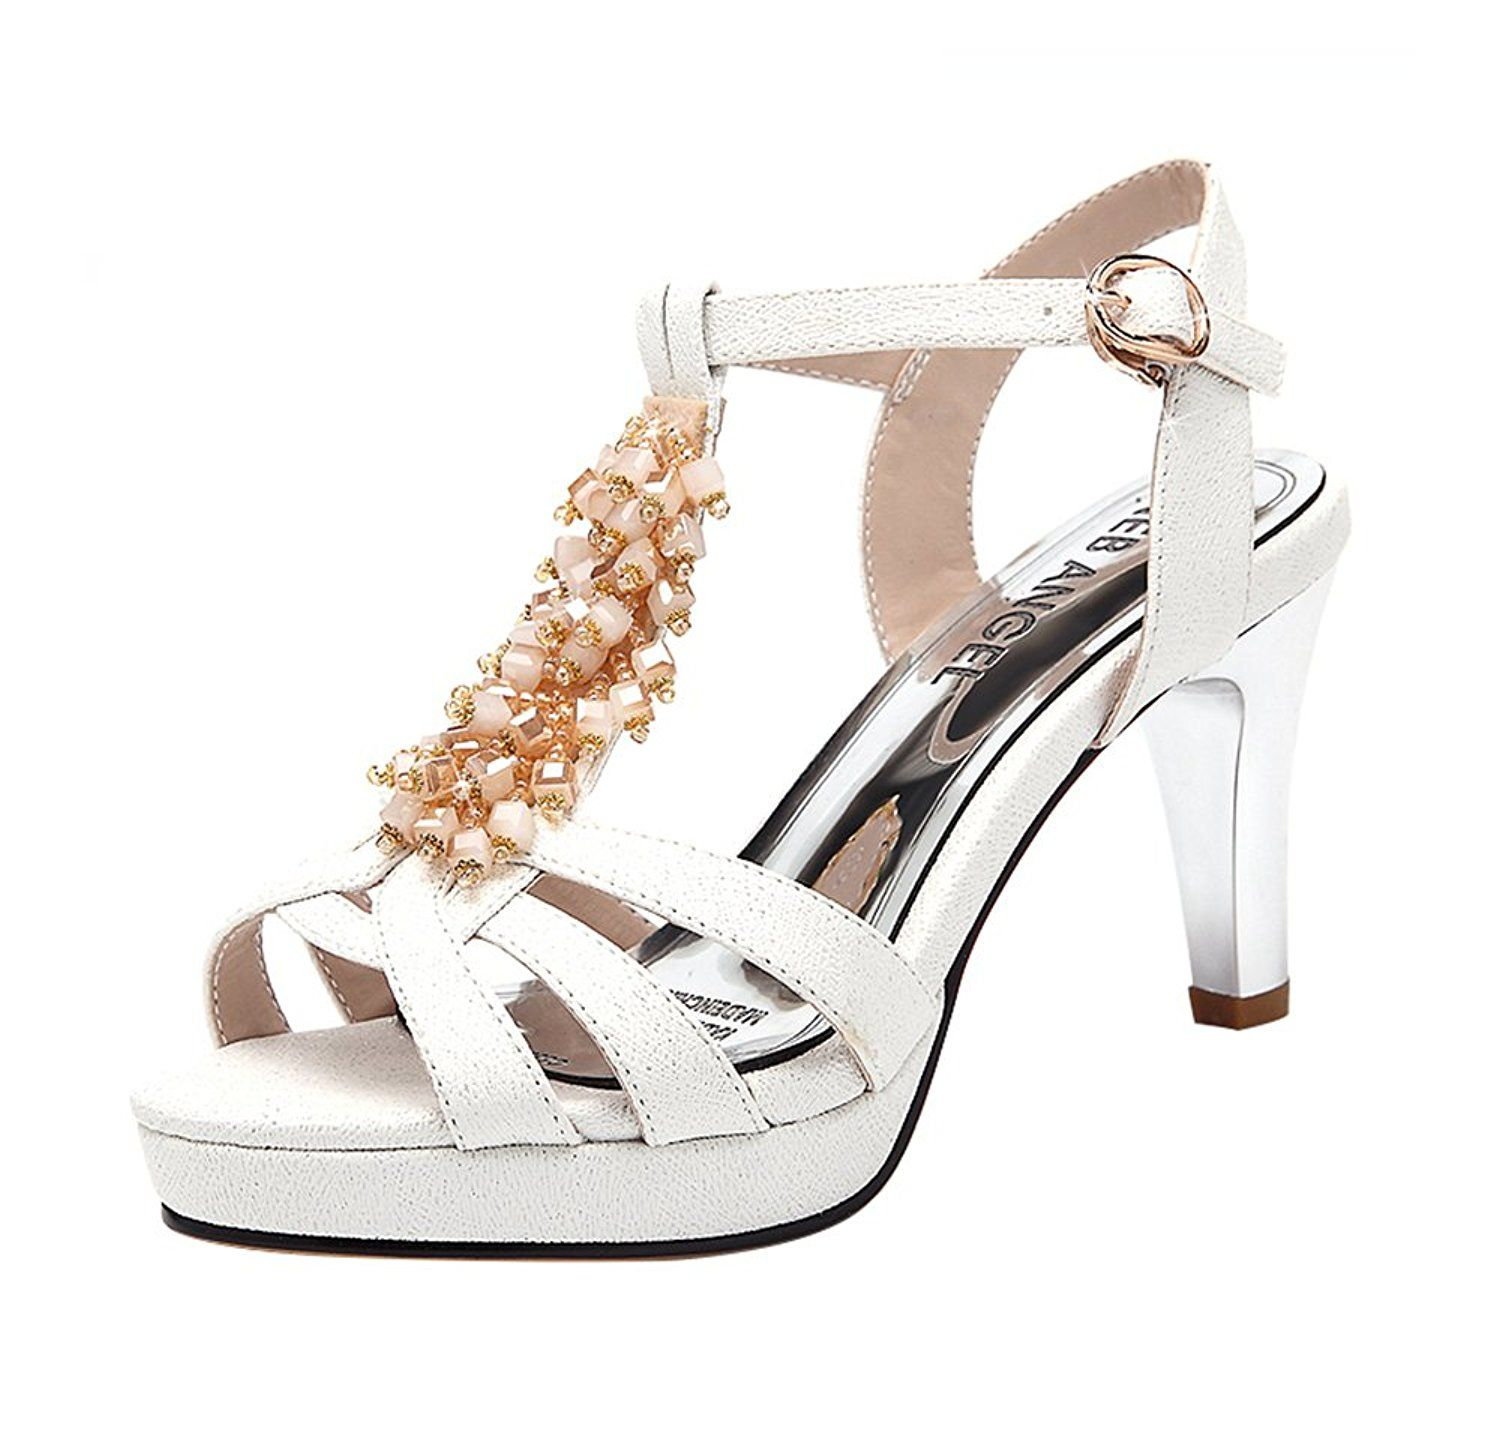 670b7ad58e97 T and Grade Women Fashion Peep Toe Rhinestone T-Strap Ankle Strap Sling  Back Chunky Heel Platform Sandals -- New and awesome outdoor gear awaits  you